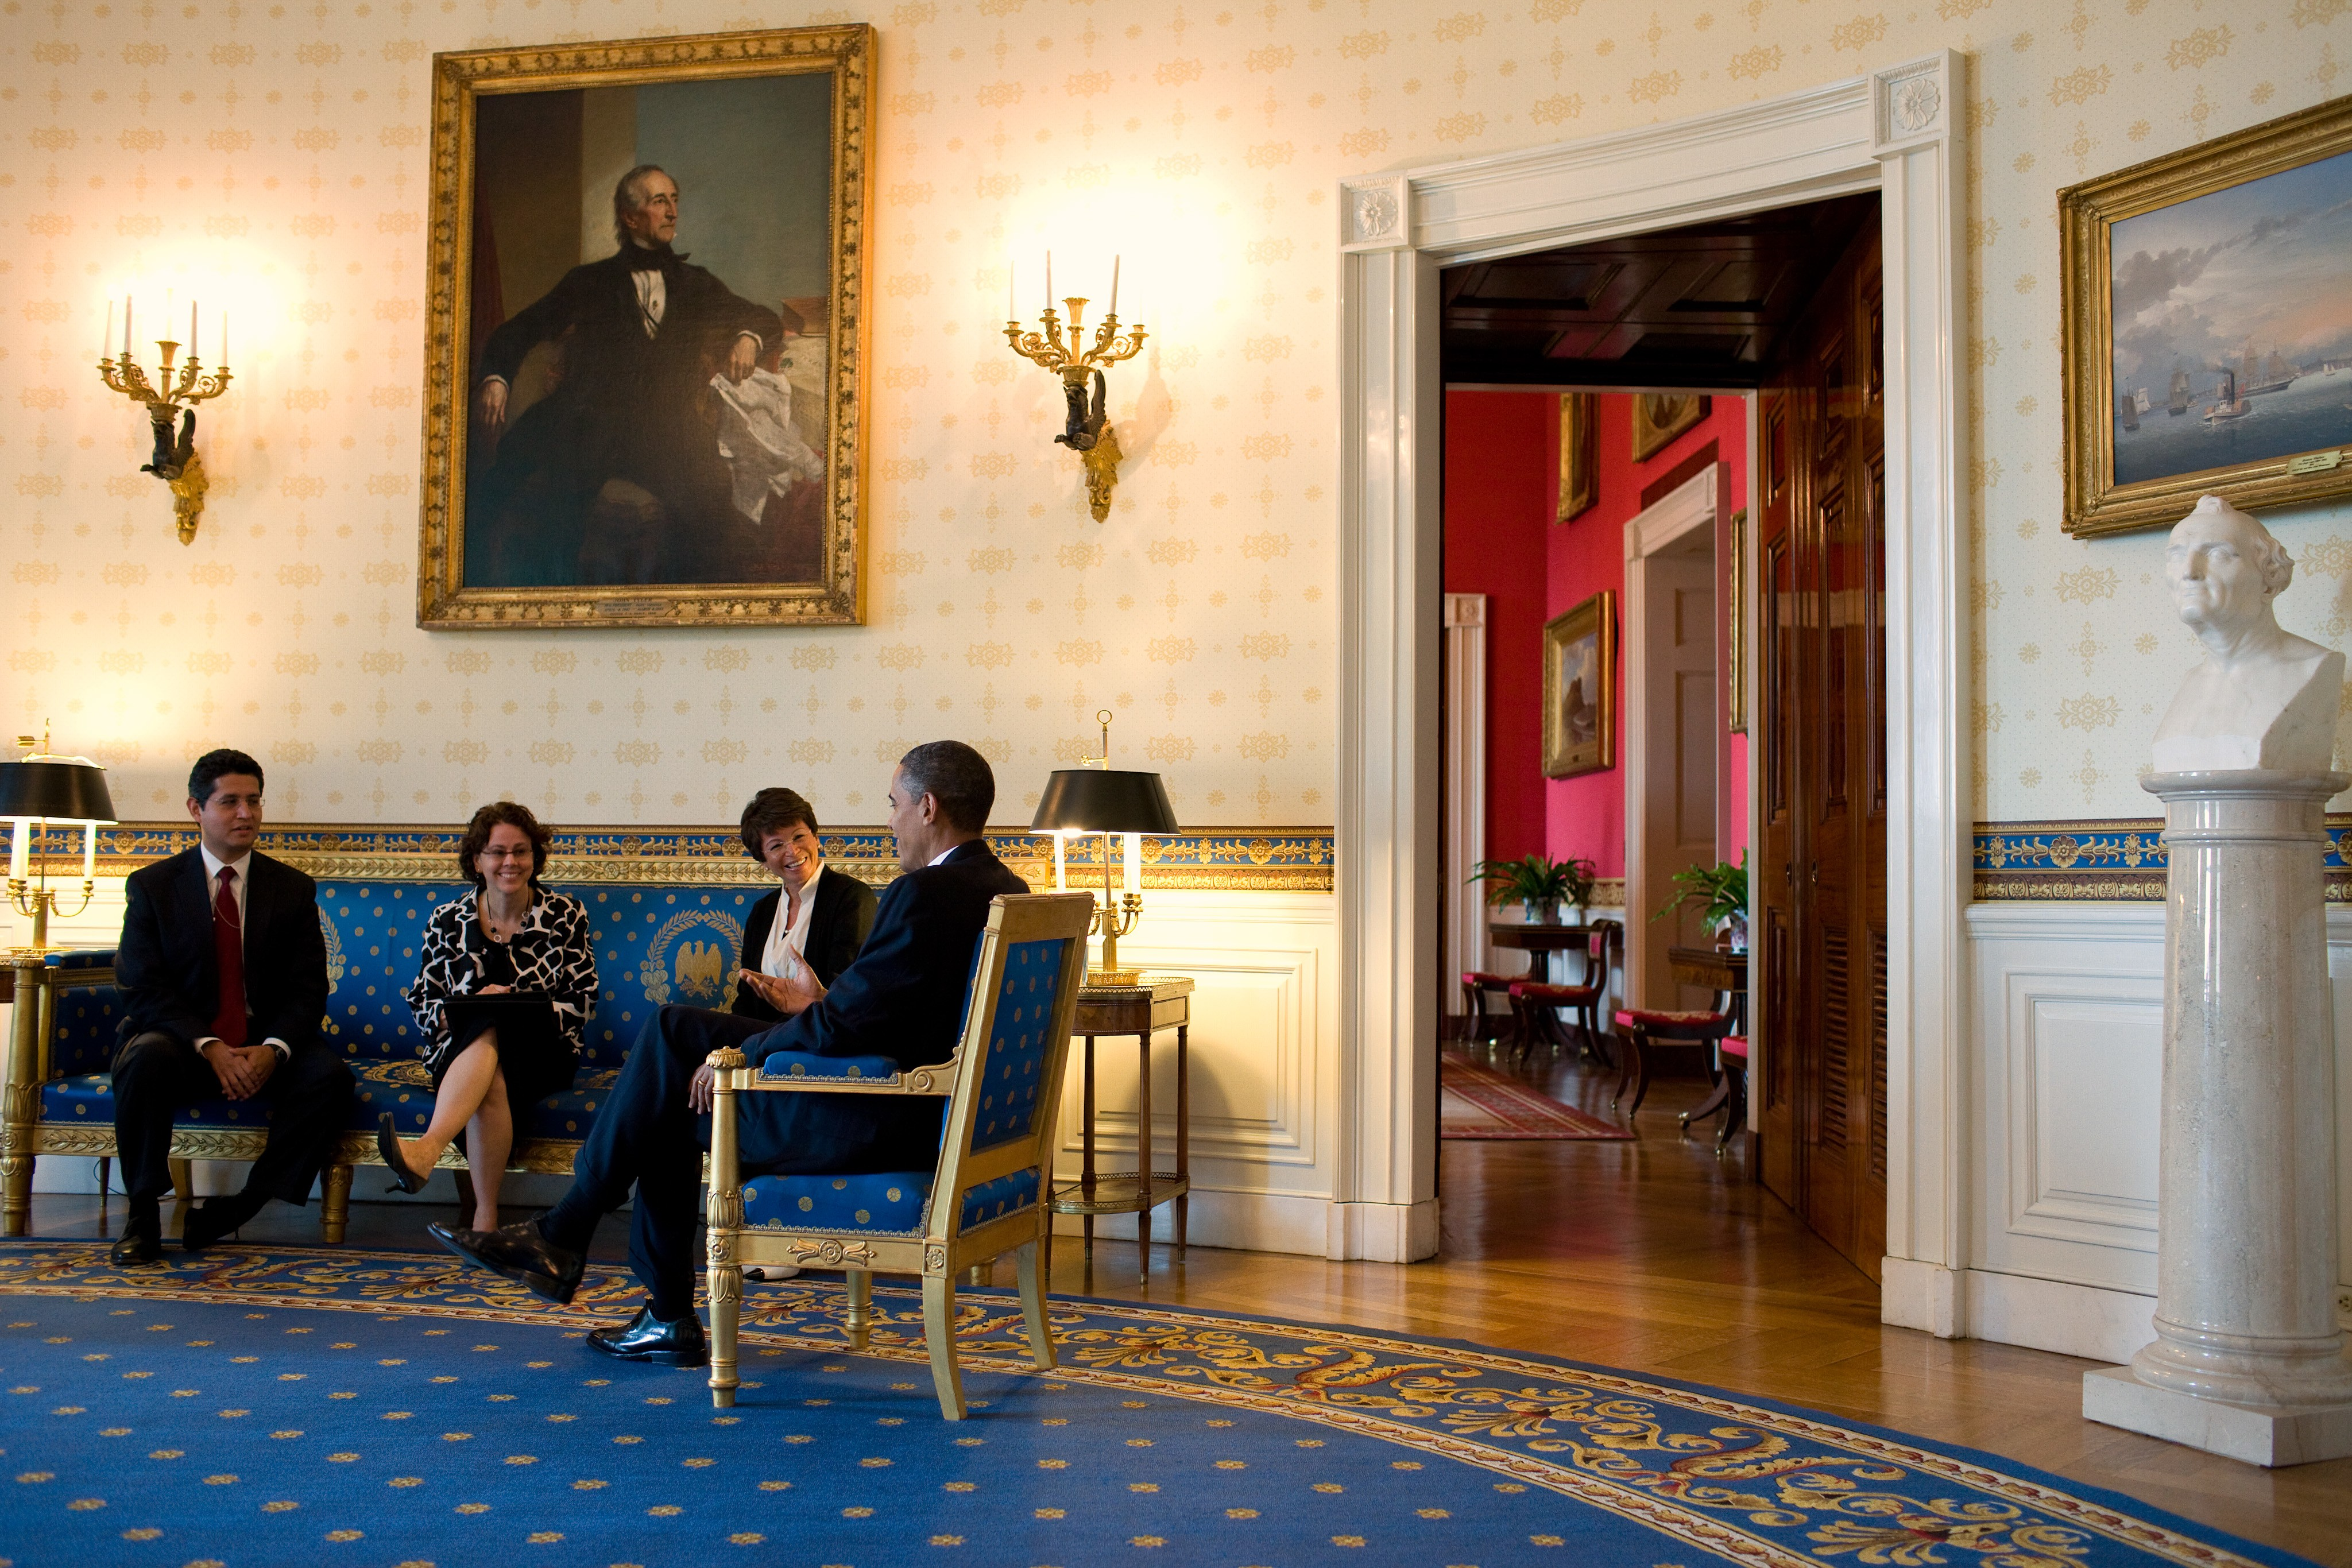 Four members of the task force meet together inside of the White House